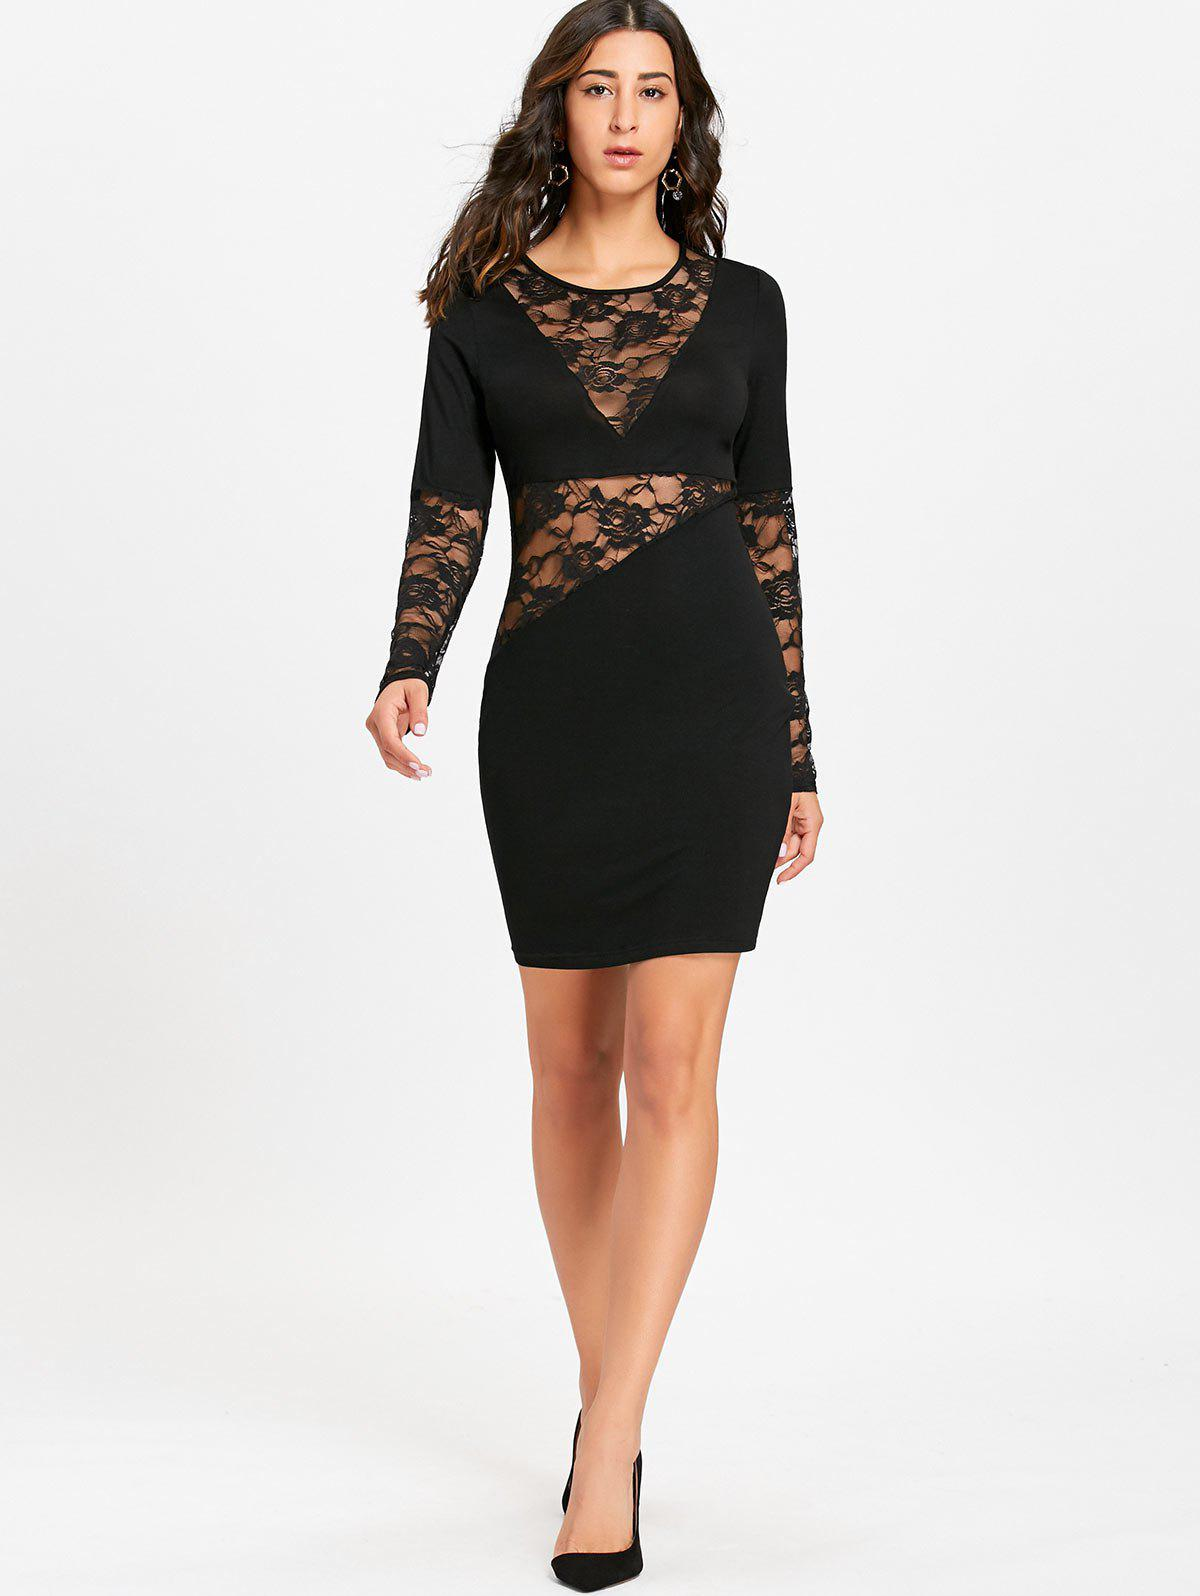 Sheer Lace Insert Long Sleeve Bodycon Dress - BLACK 2XL